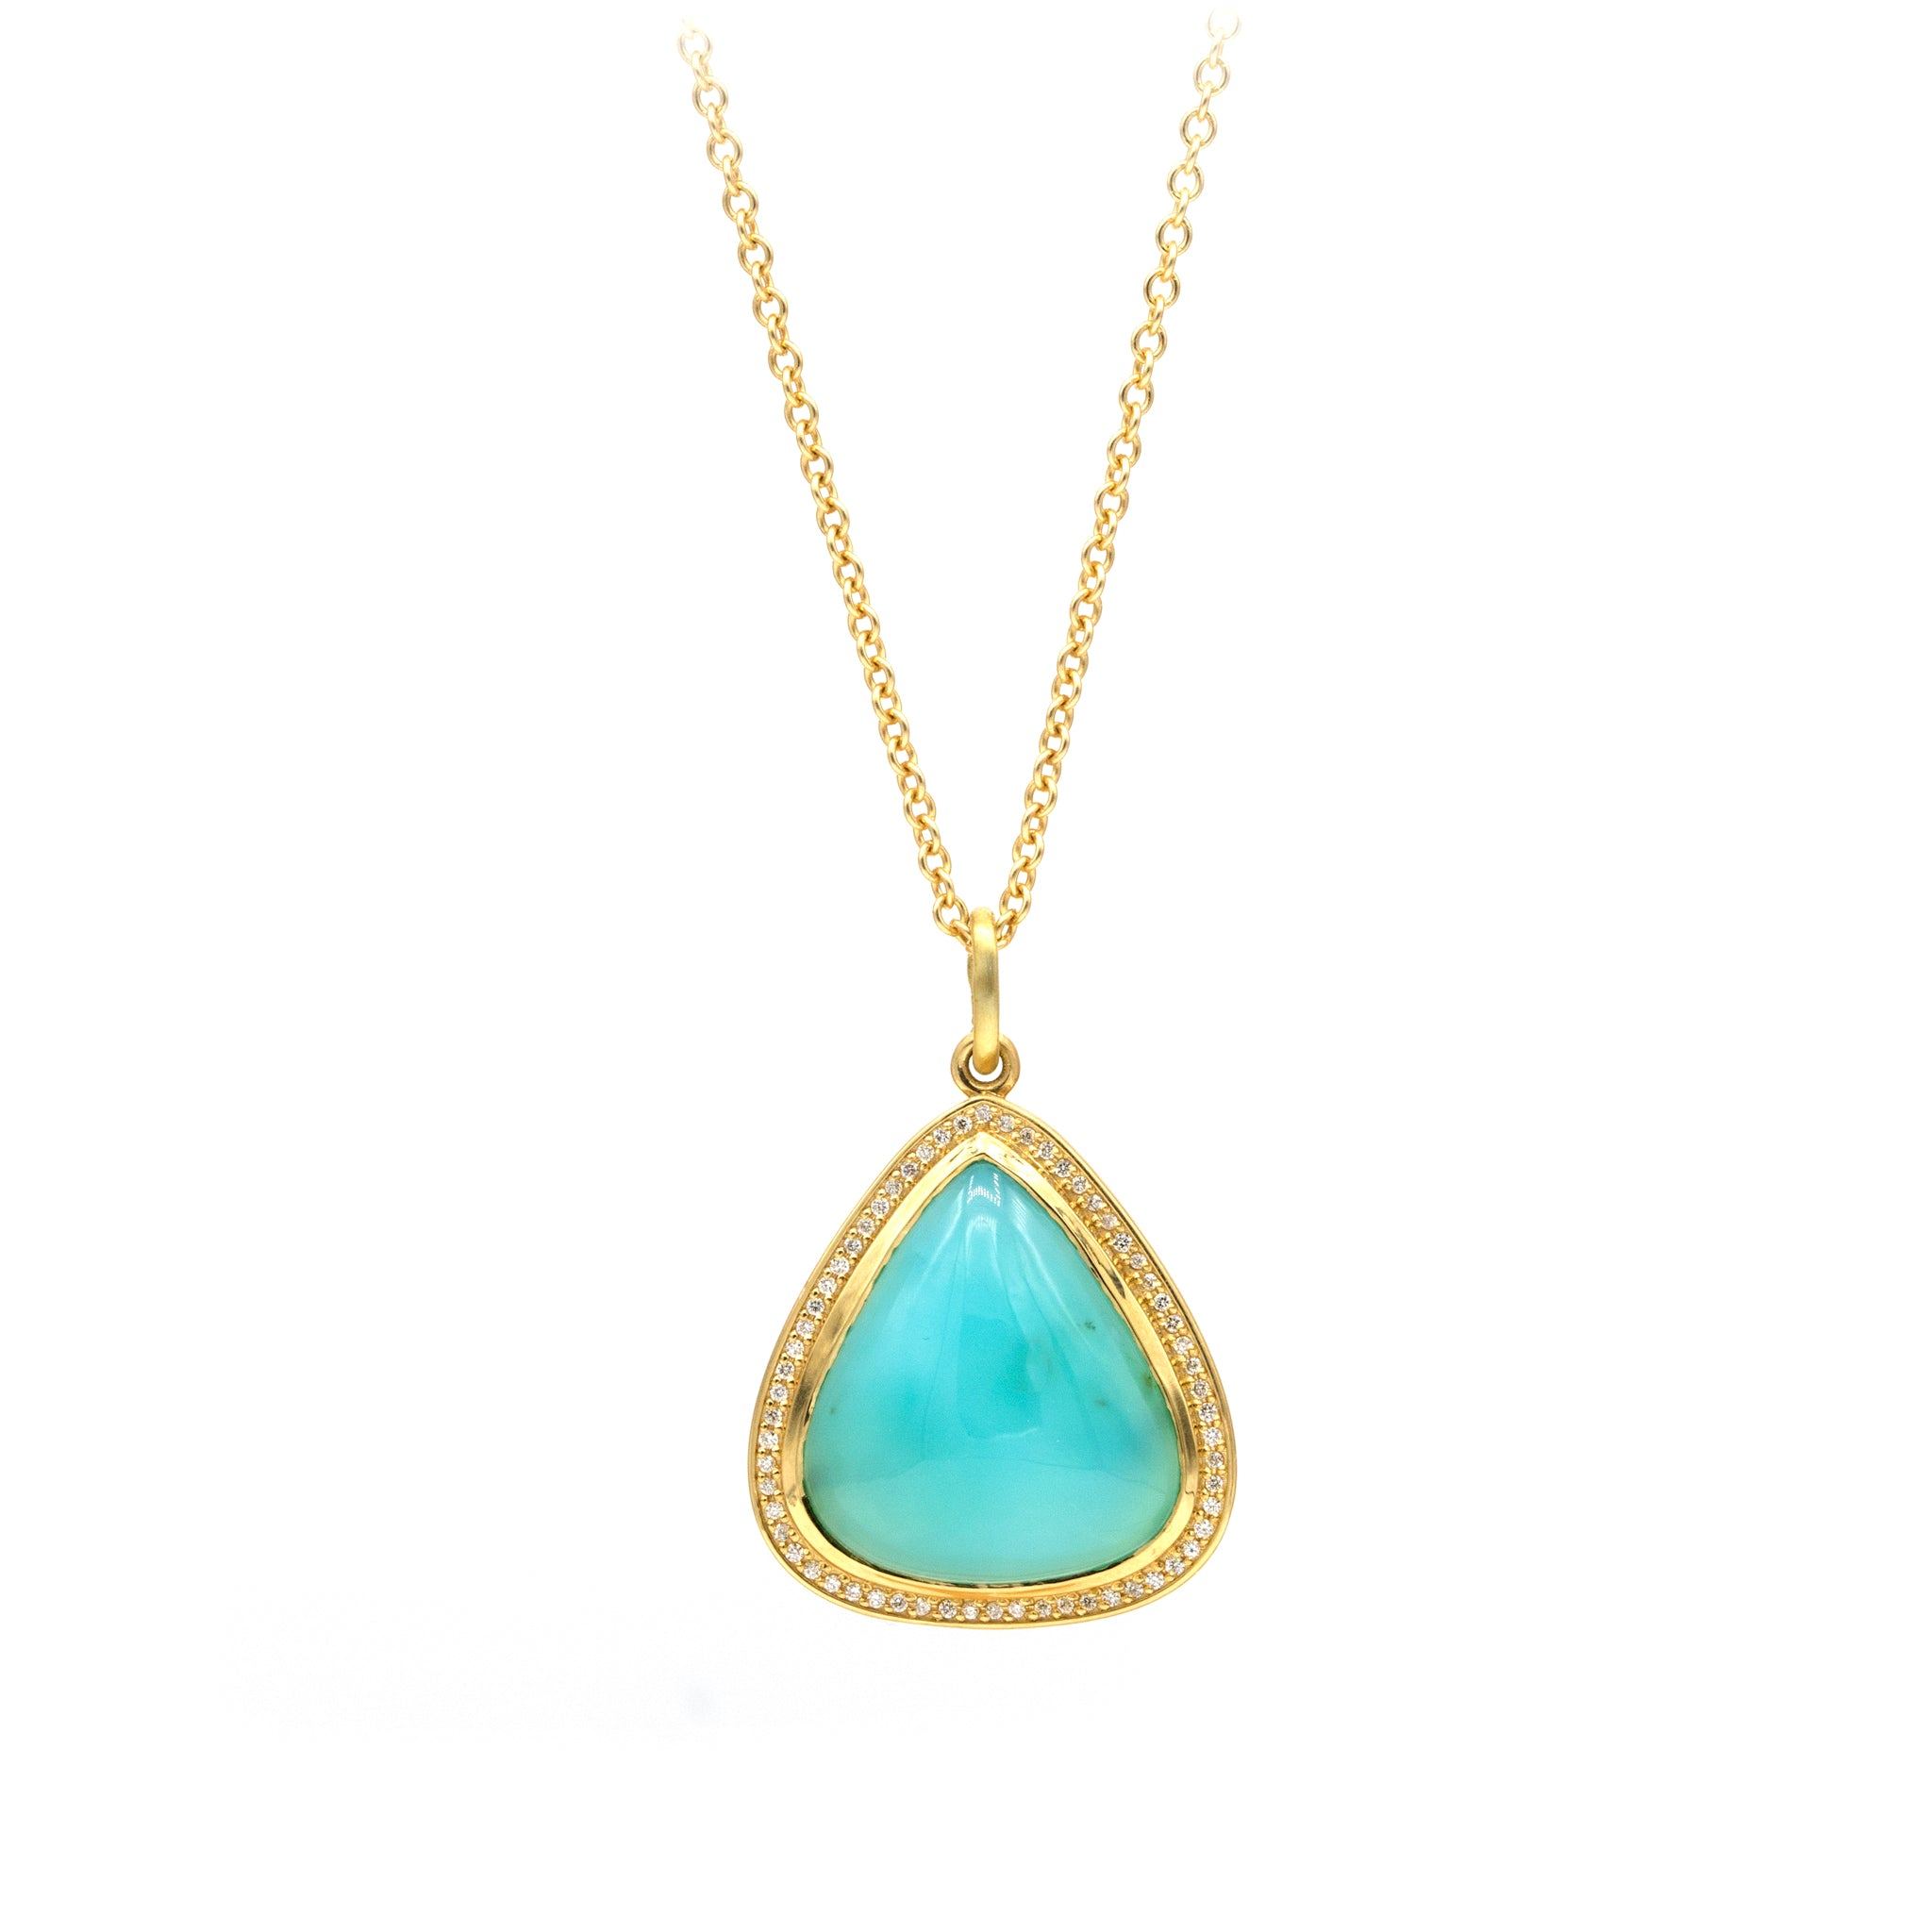 Sanded Necklace - Paraiba